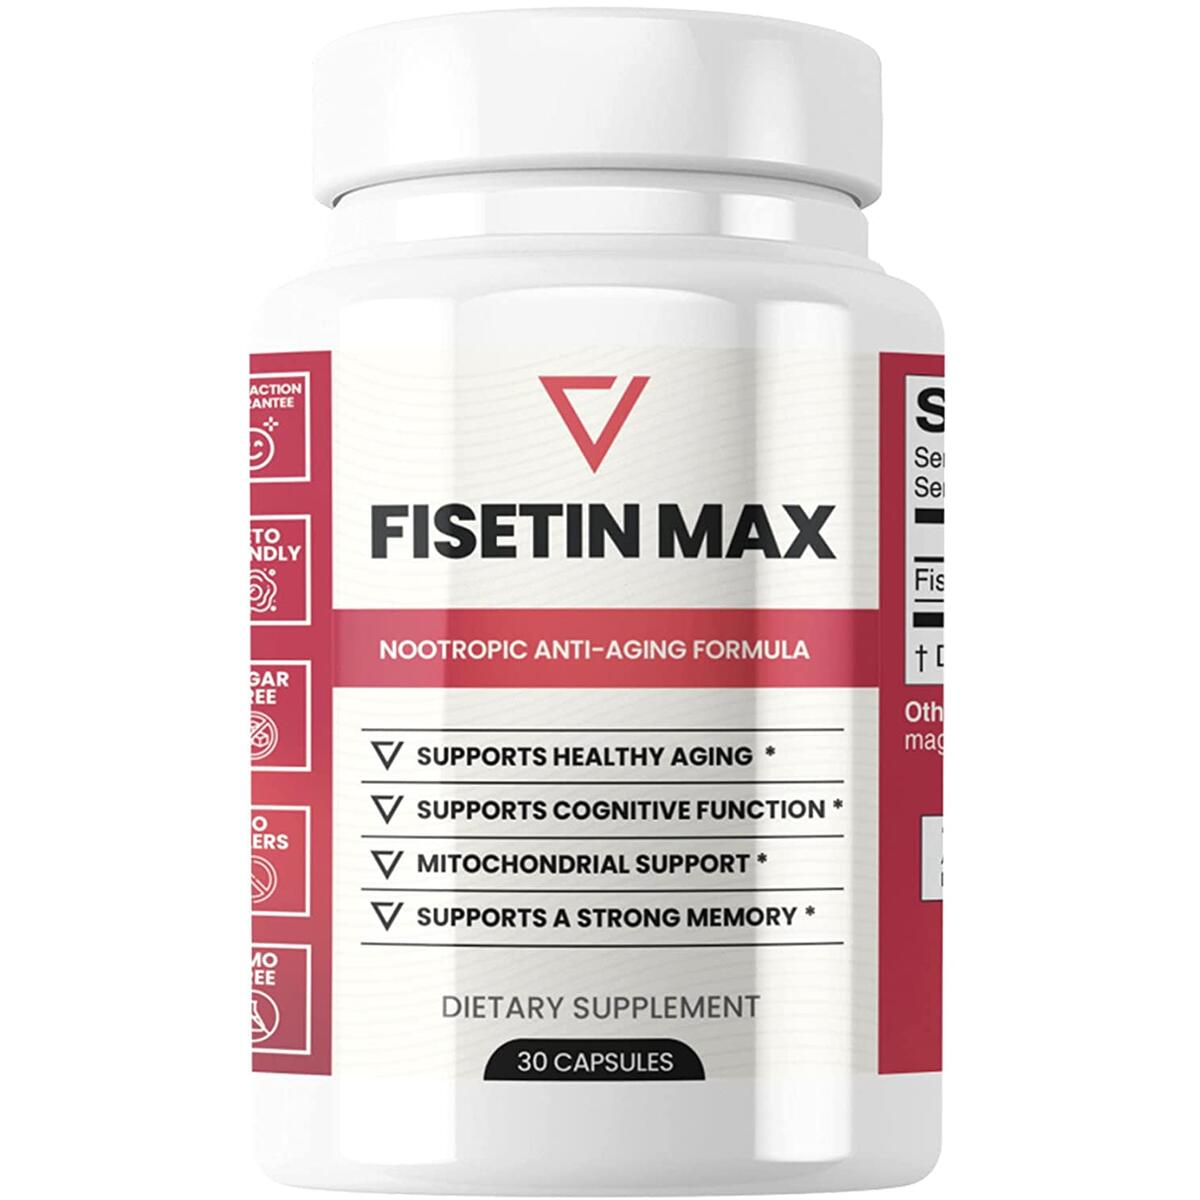 Fisetin Max | Nootropic Anti-Aging Supplement - Doctor Approved Antioxidant Support for Healthy Aging, Better Brain Health, Improved Energy Levels, and Maintaining Strong Memory* - 30-Day Supply